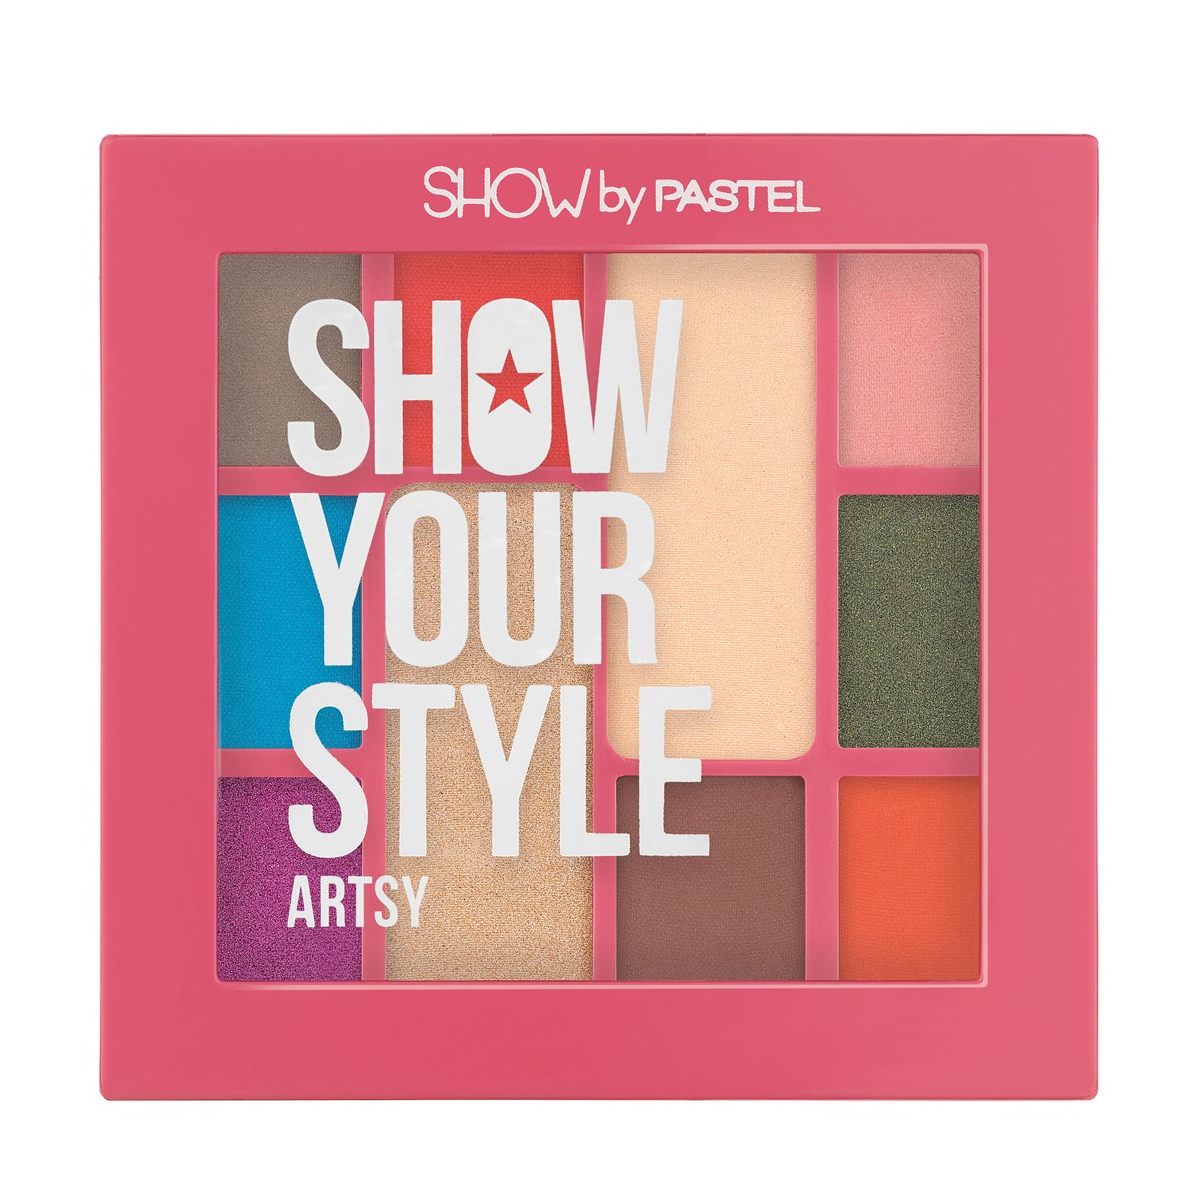 Pastel Show By Pastel Show Your Style Artsy Far Seti